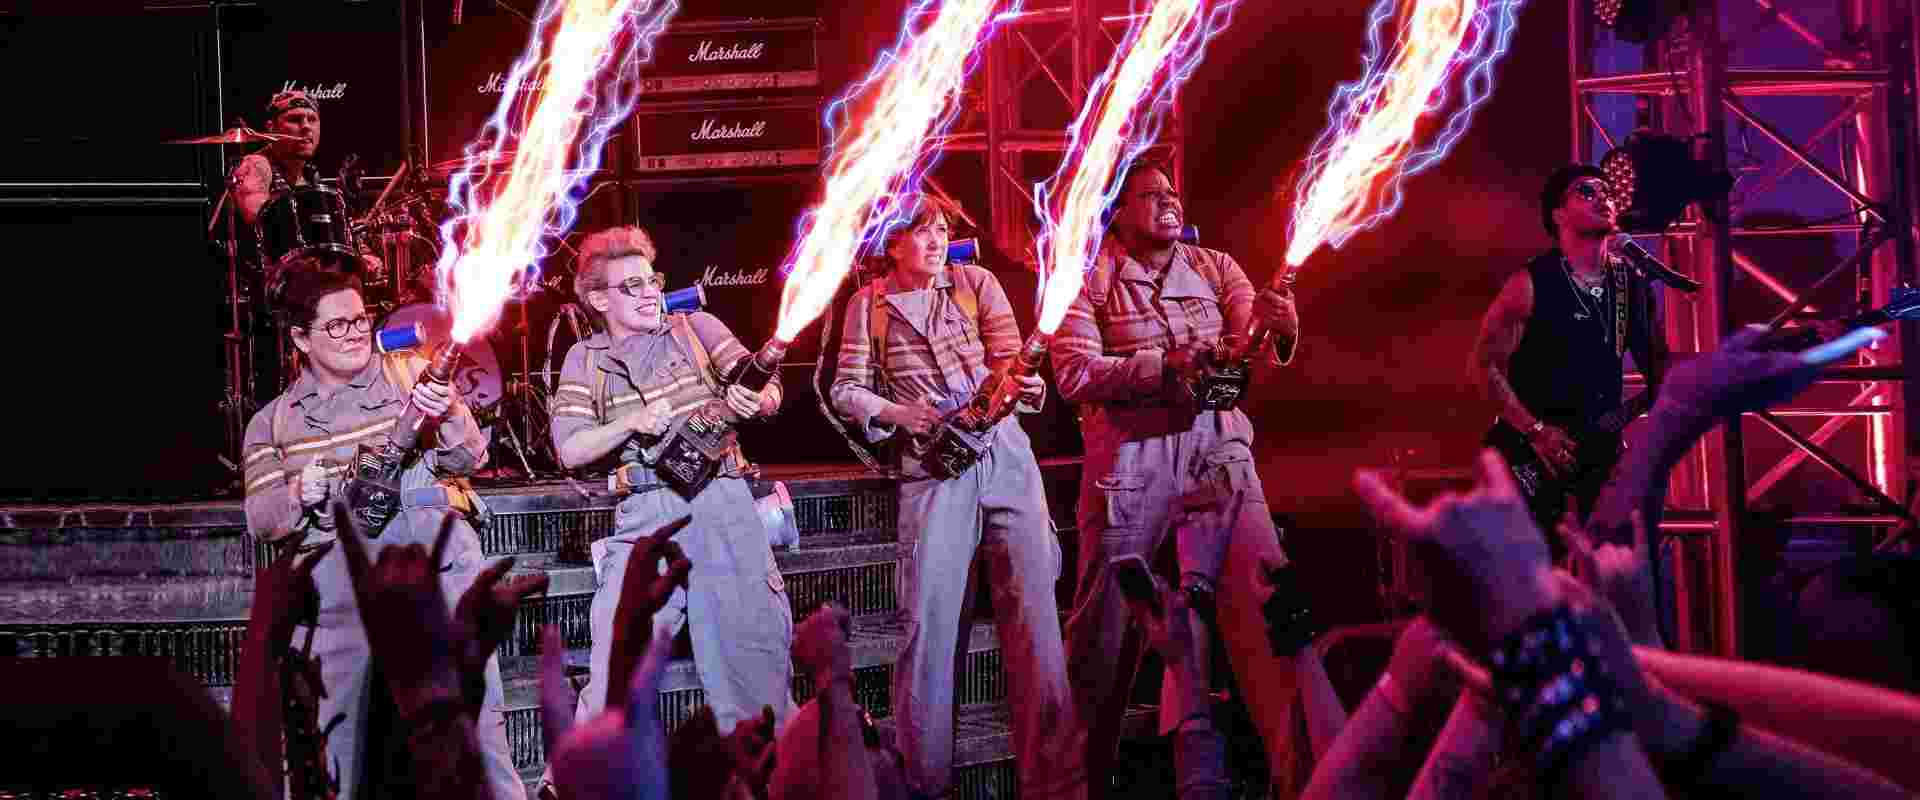 ghostbusters-2016-movie-members-picture